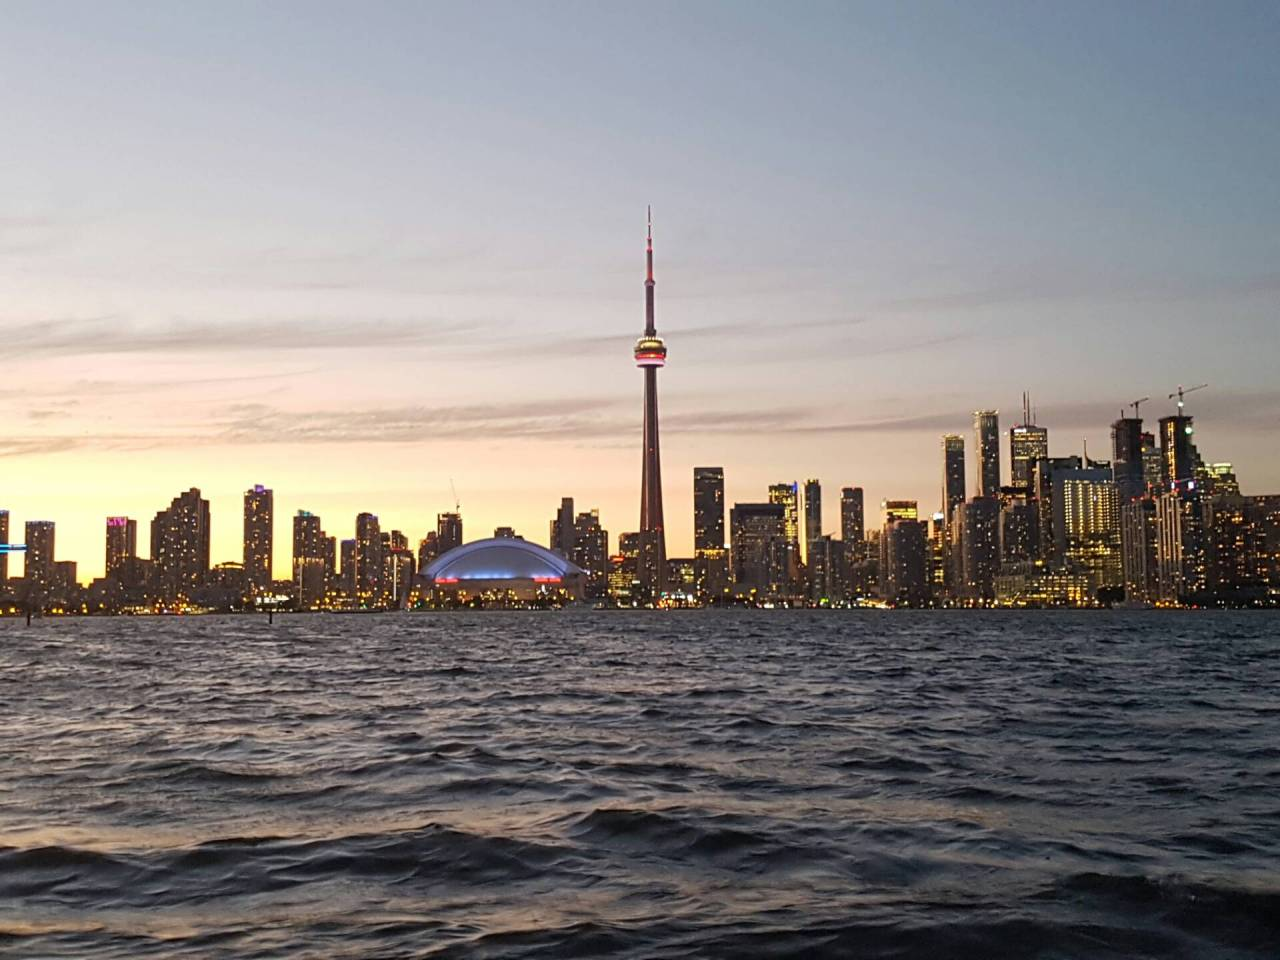 Explore Toronto with CityPASS – Save up to 50%